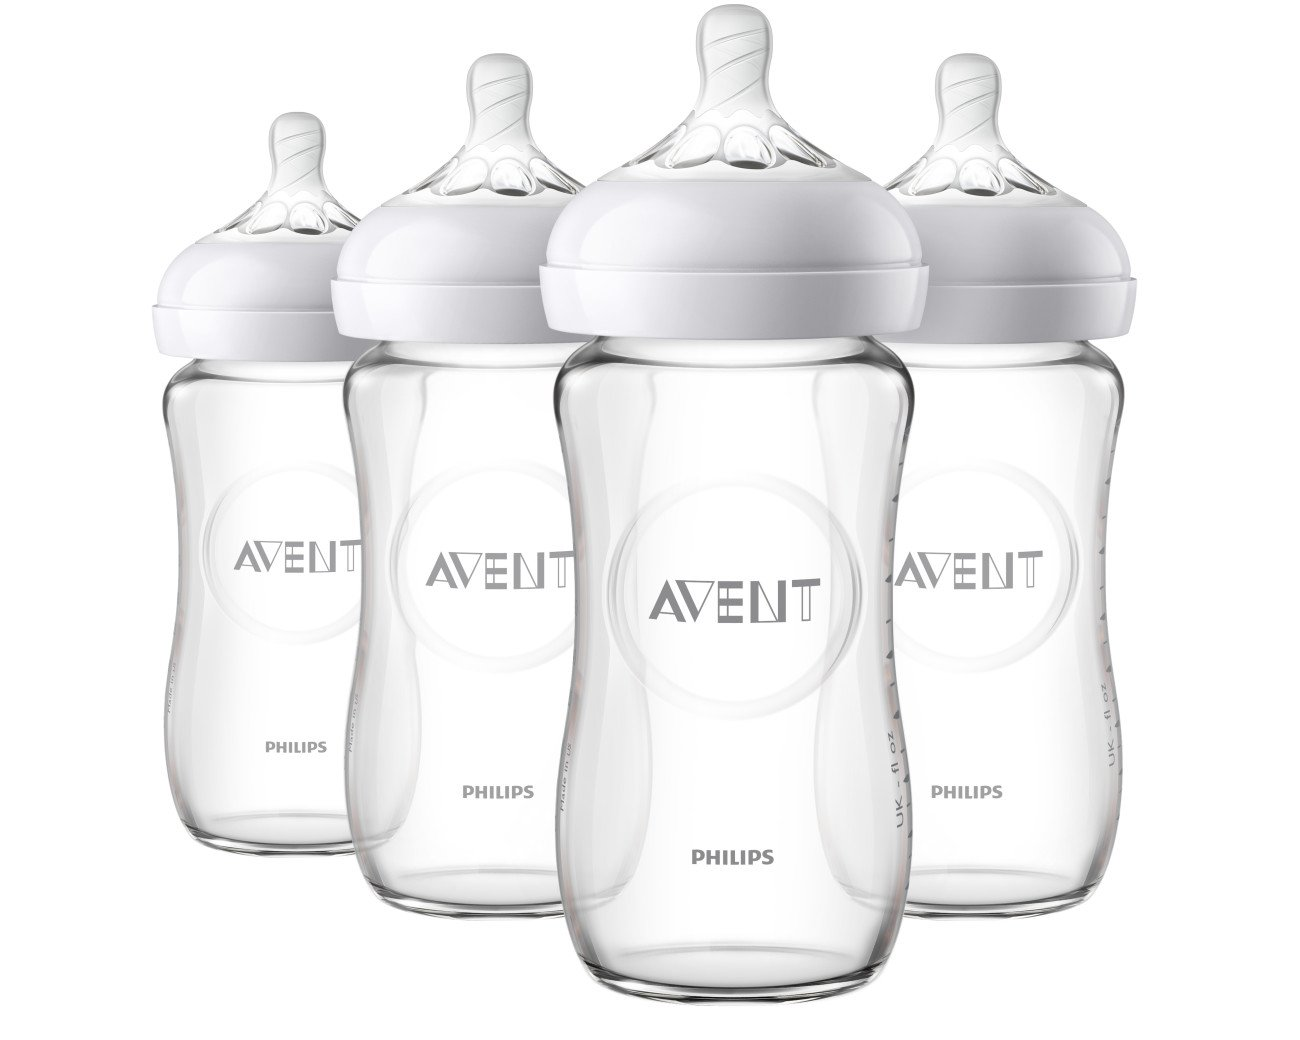 Philips Avent Glass Baby Bottle